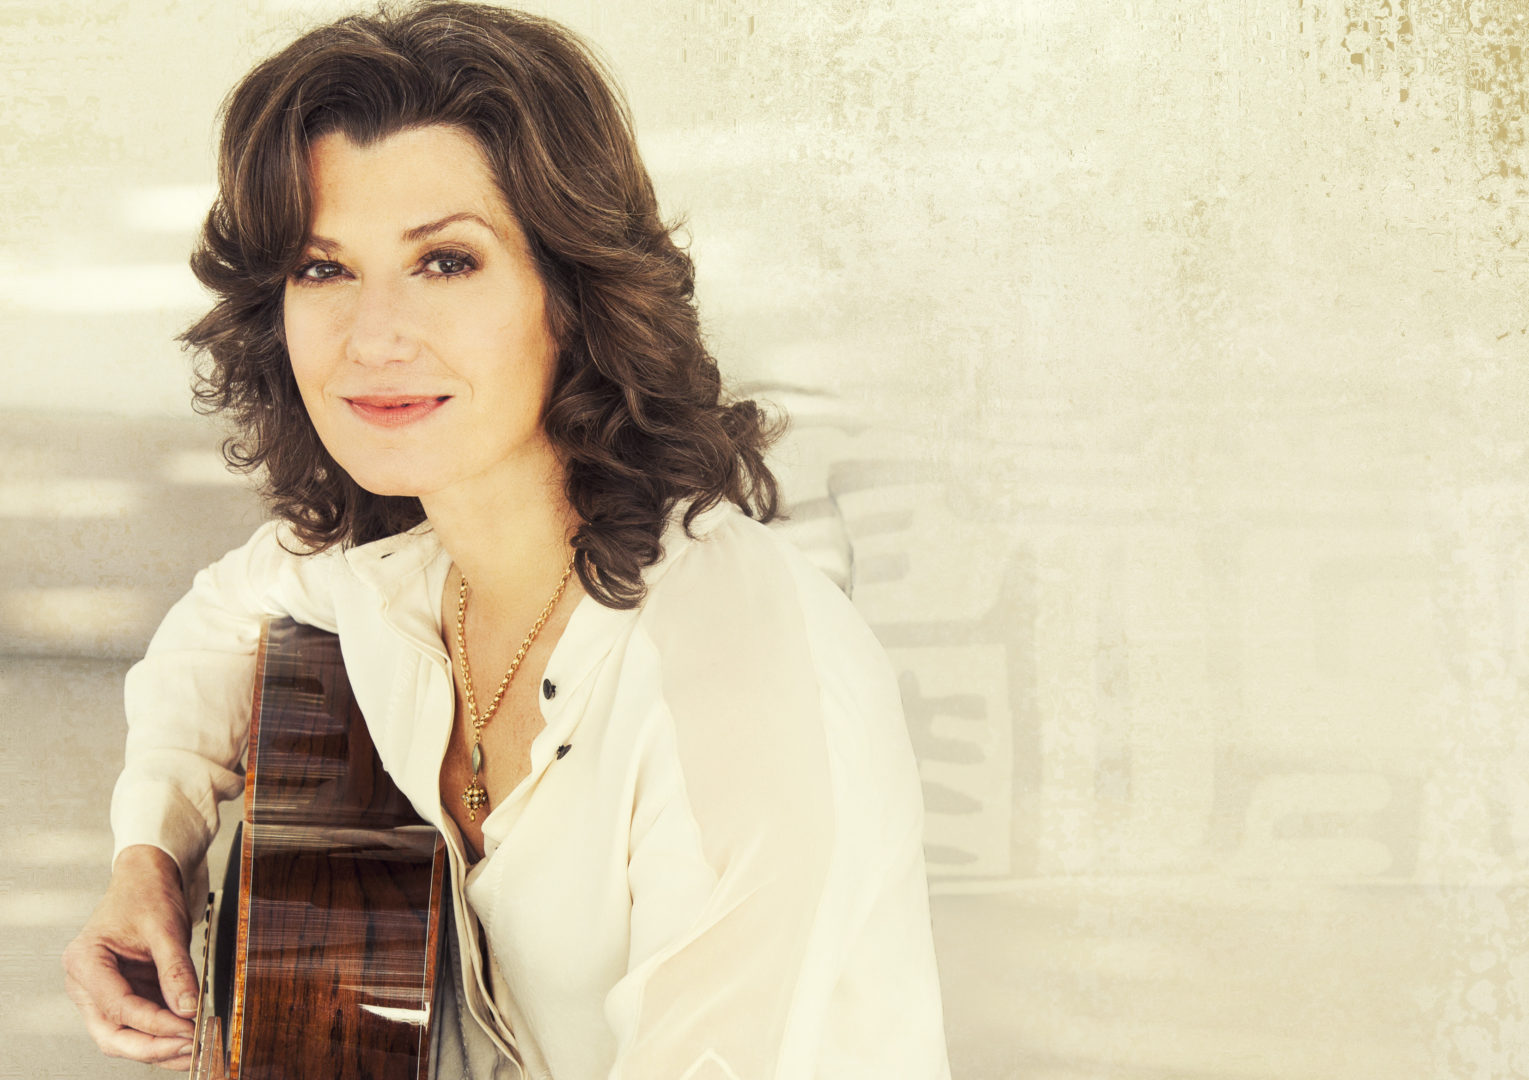 Picture of Amy Grant with her guitar used in an article for an upcoming Franklin TN event